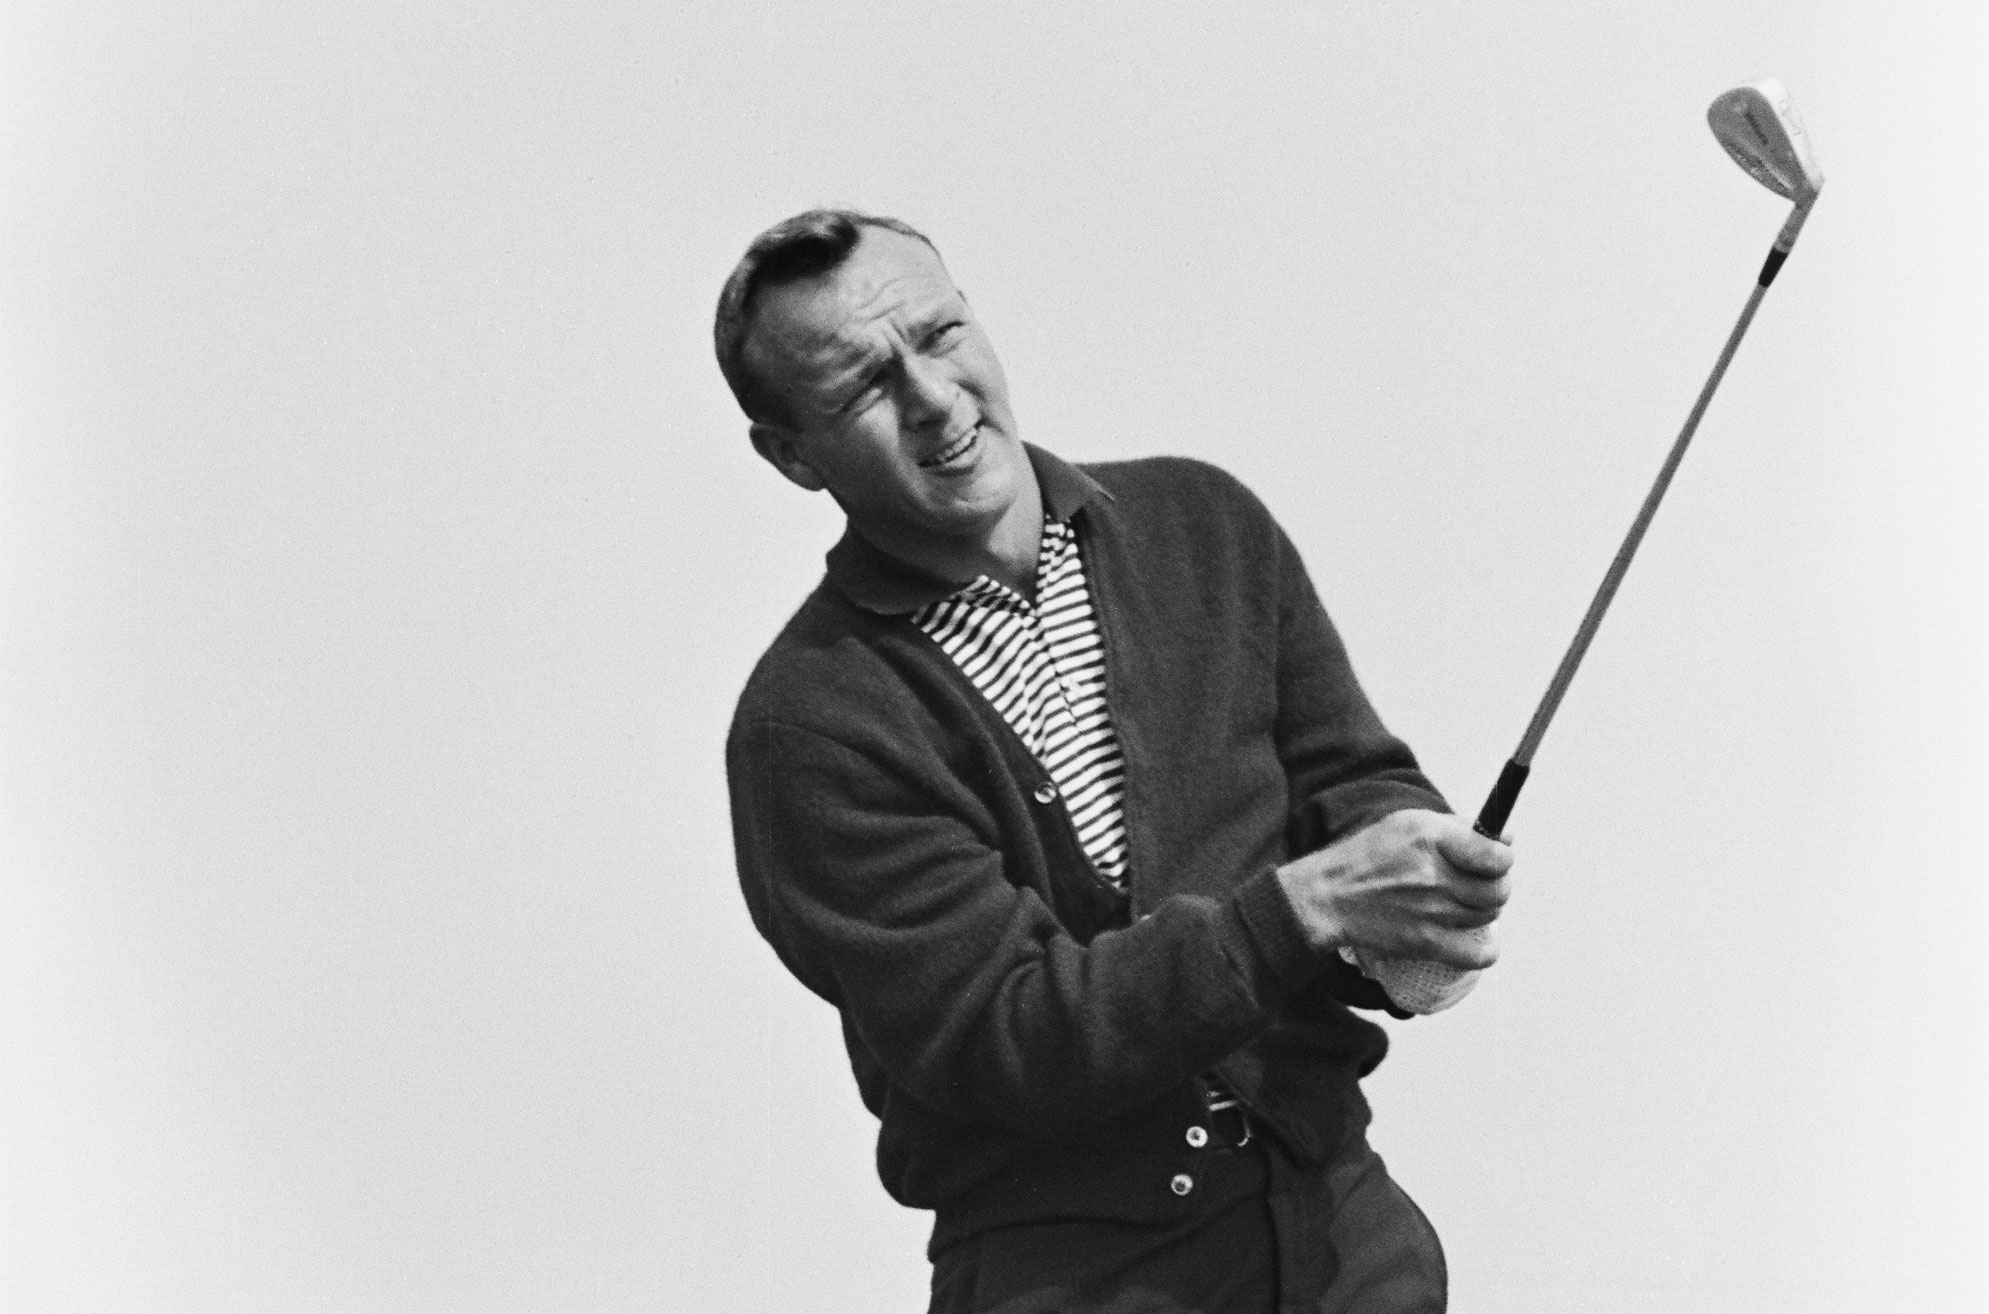 Arnold palmer sports a cardigan at the 1963 World Series of Golf.